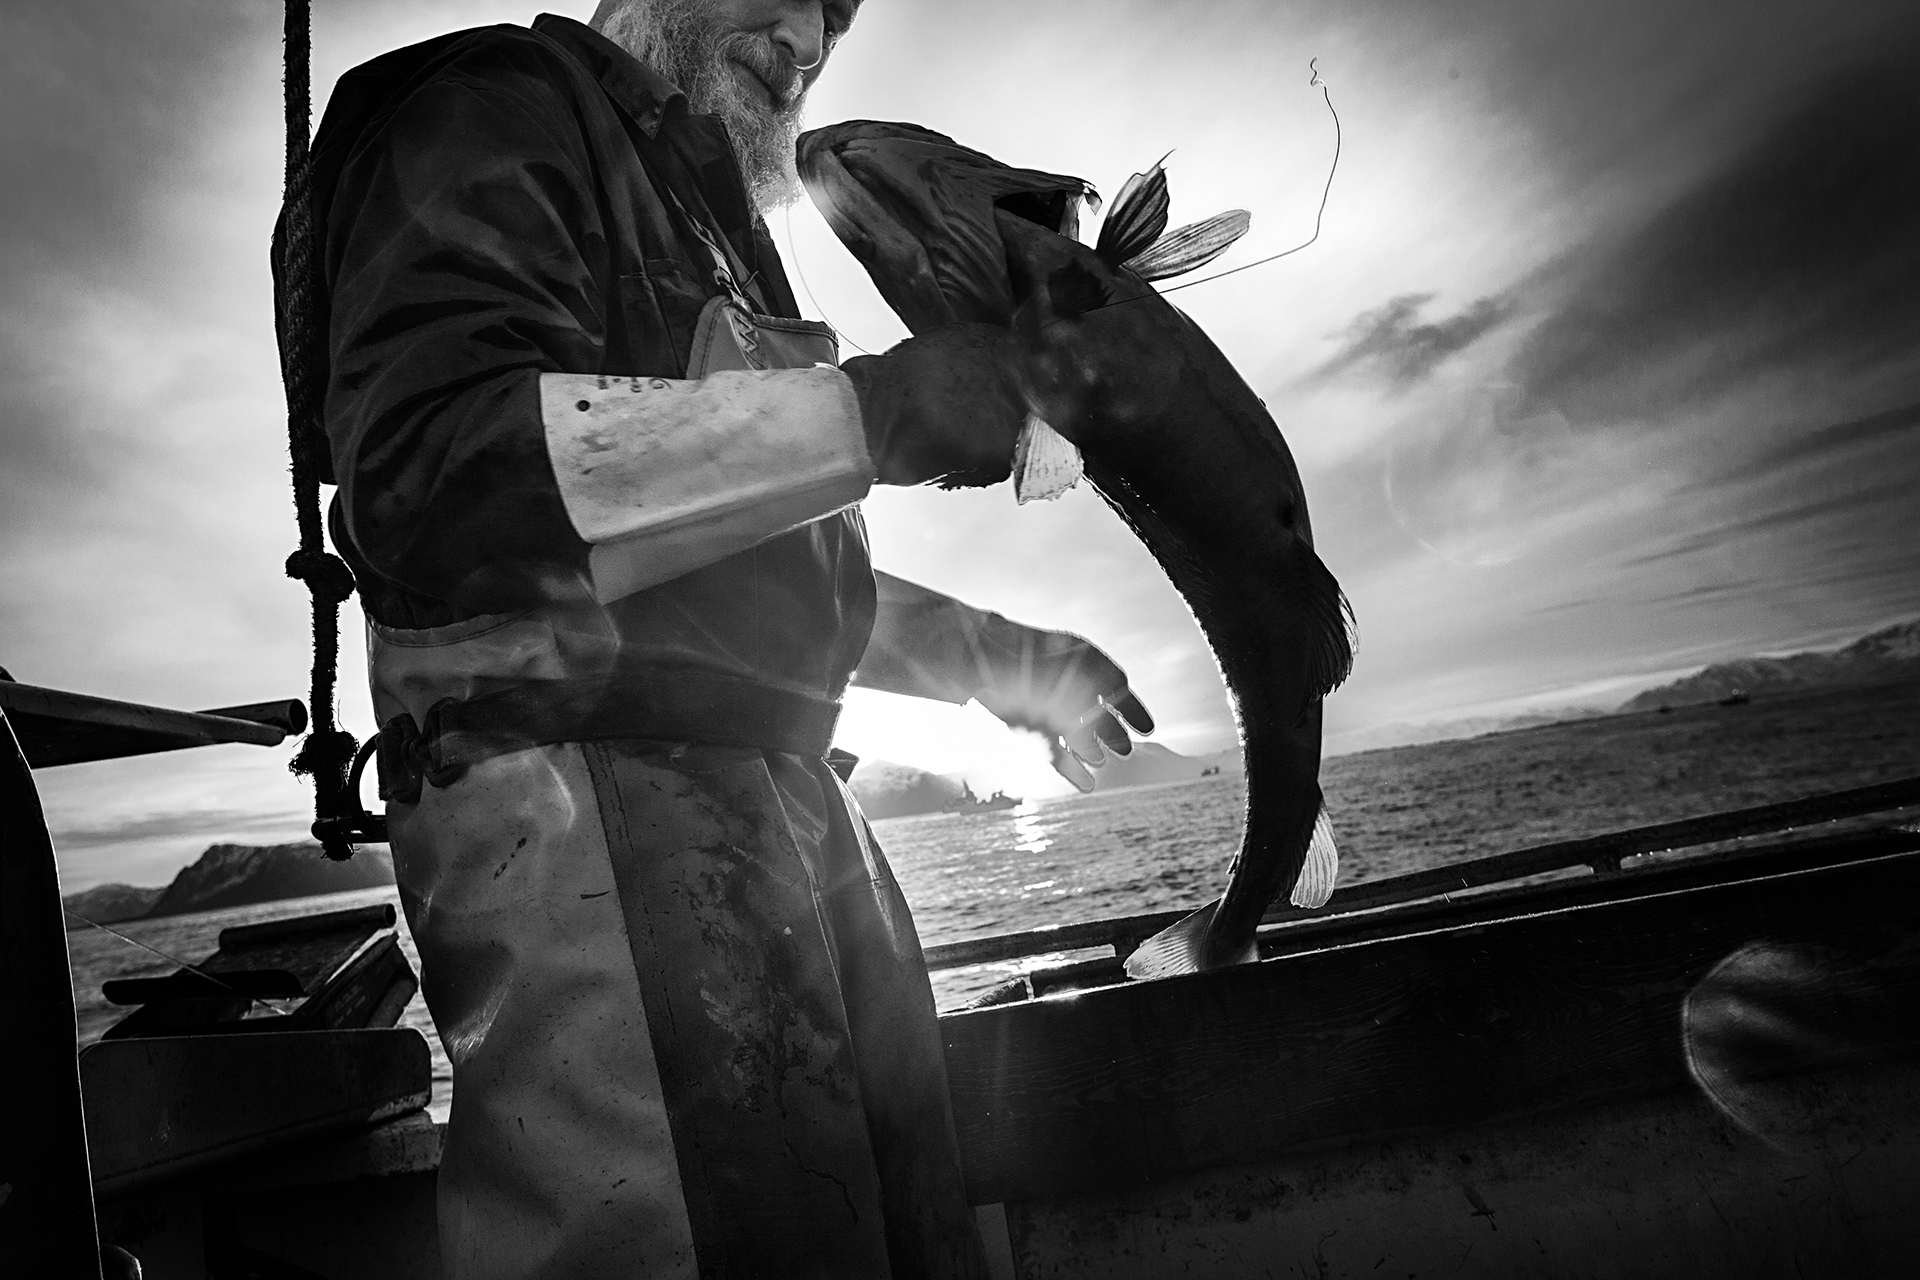 Cod fisher Kyrre Brun holds a cod in his fishing boat outside Stø, Vesterålen.